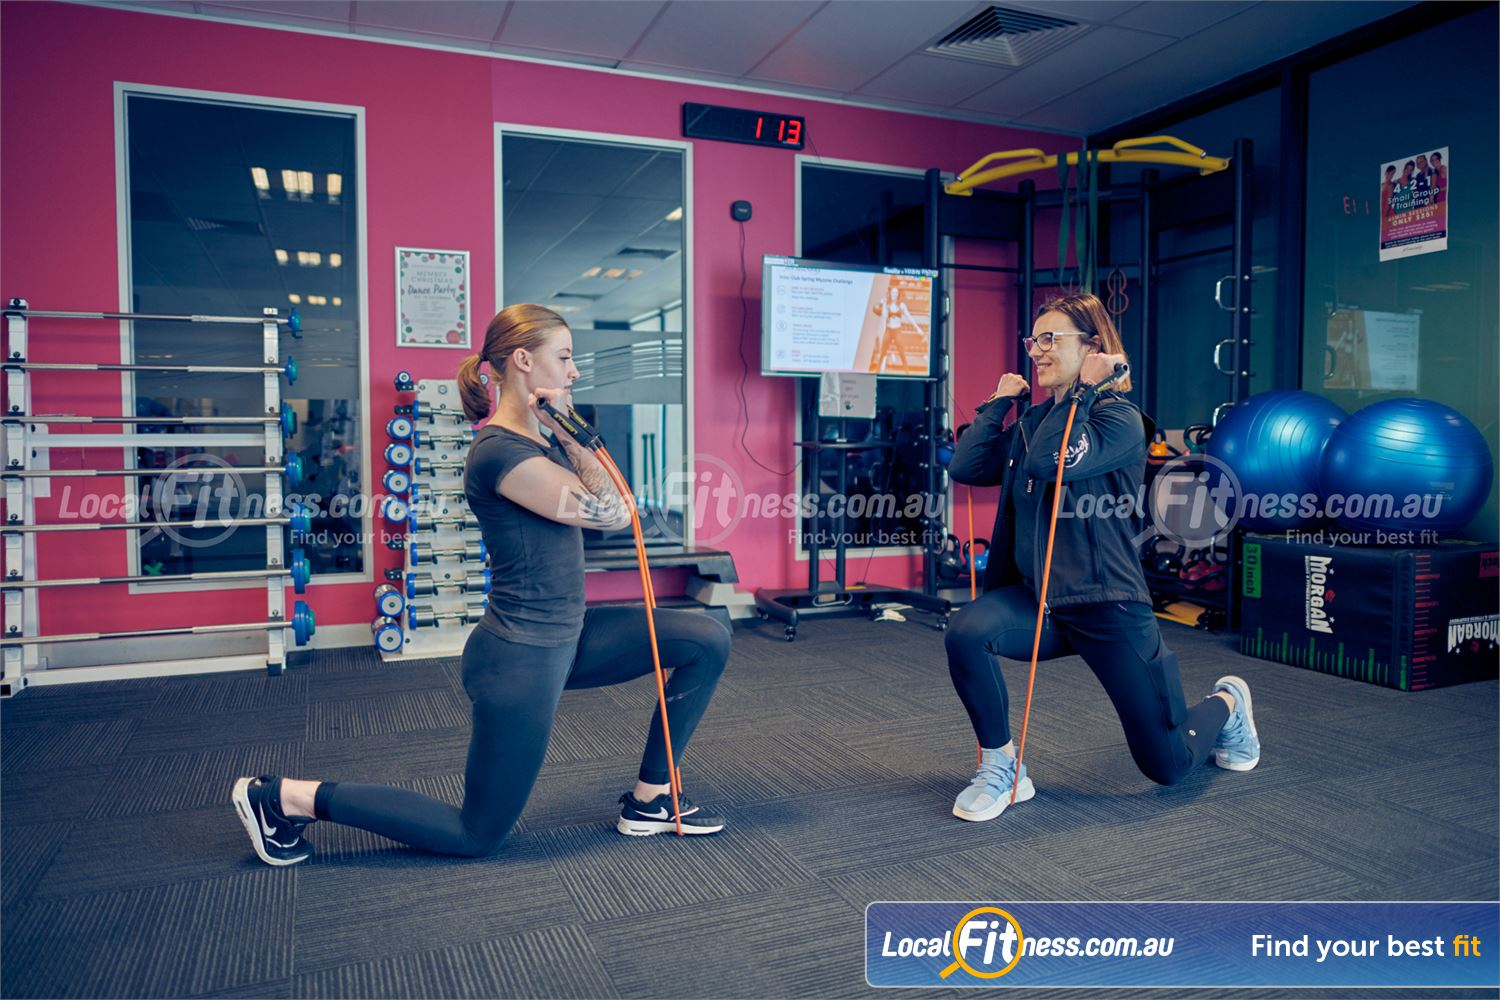 Fernwood Fitness Near Ravenhall Our Cairnlea gym team will add variety to your women's program inc. resistance band training.